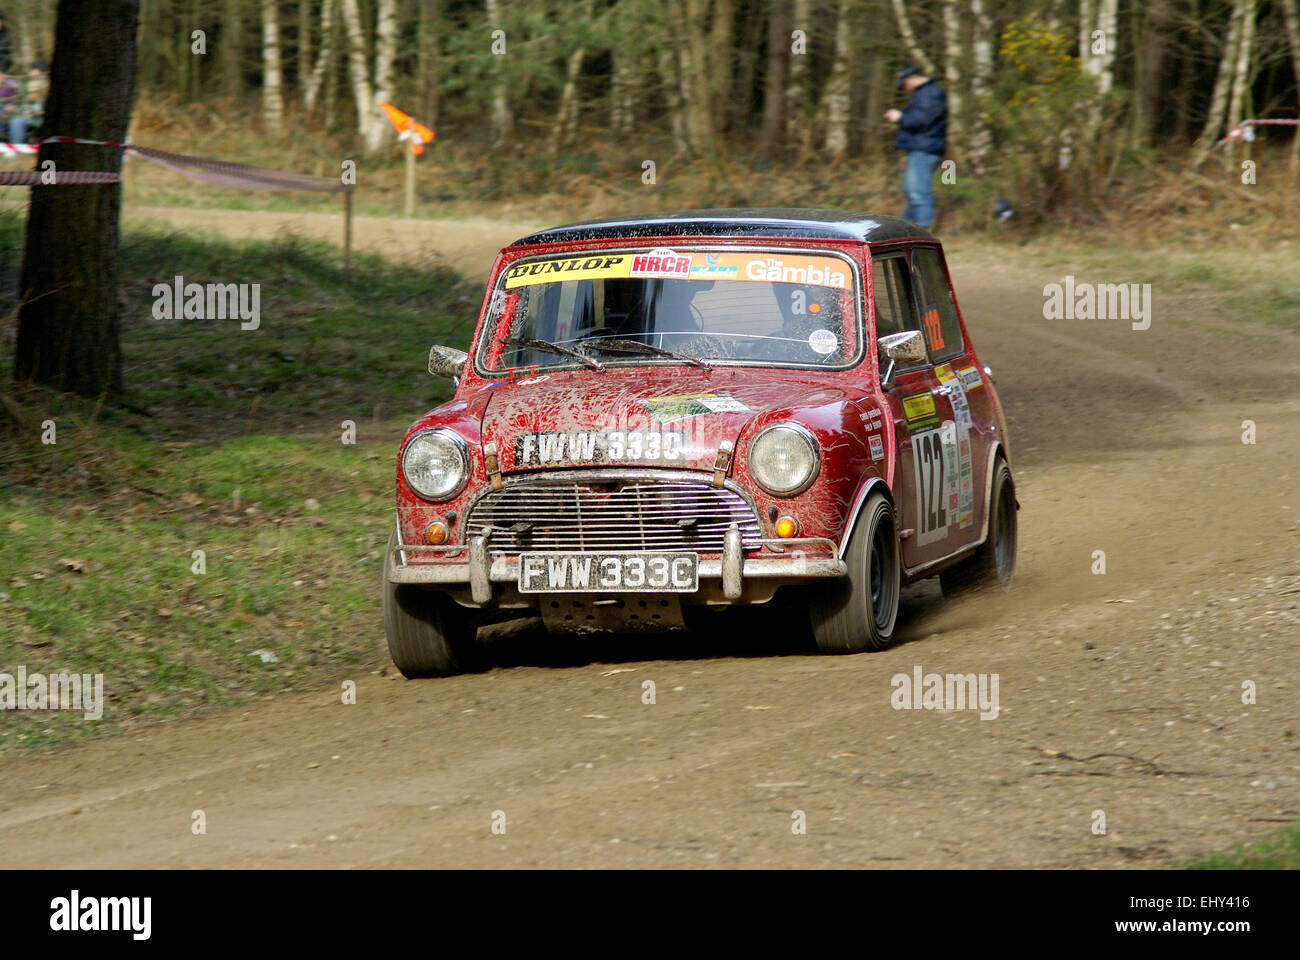 Mini Cooper S Rally Car - Stock Image